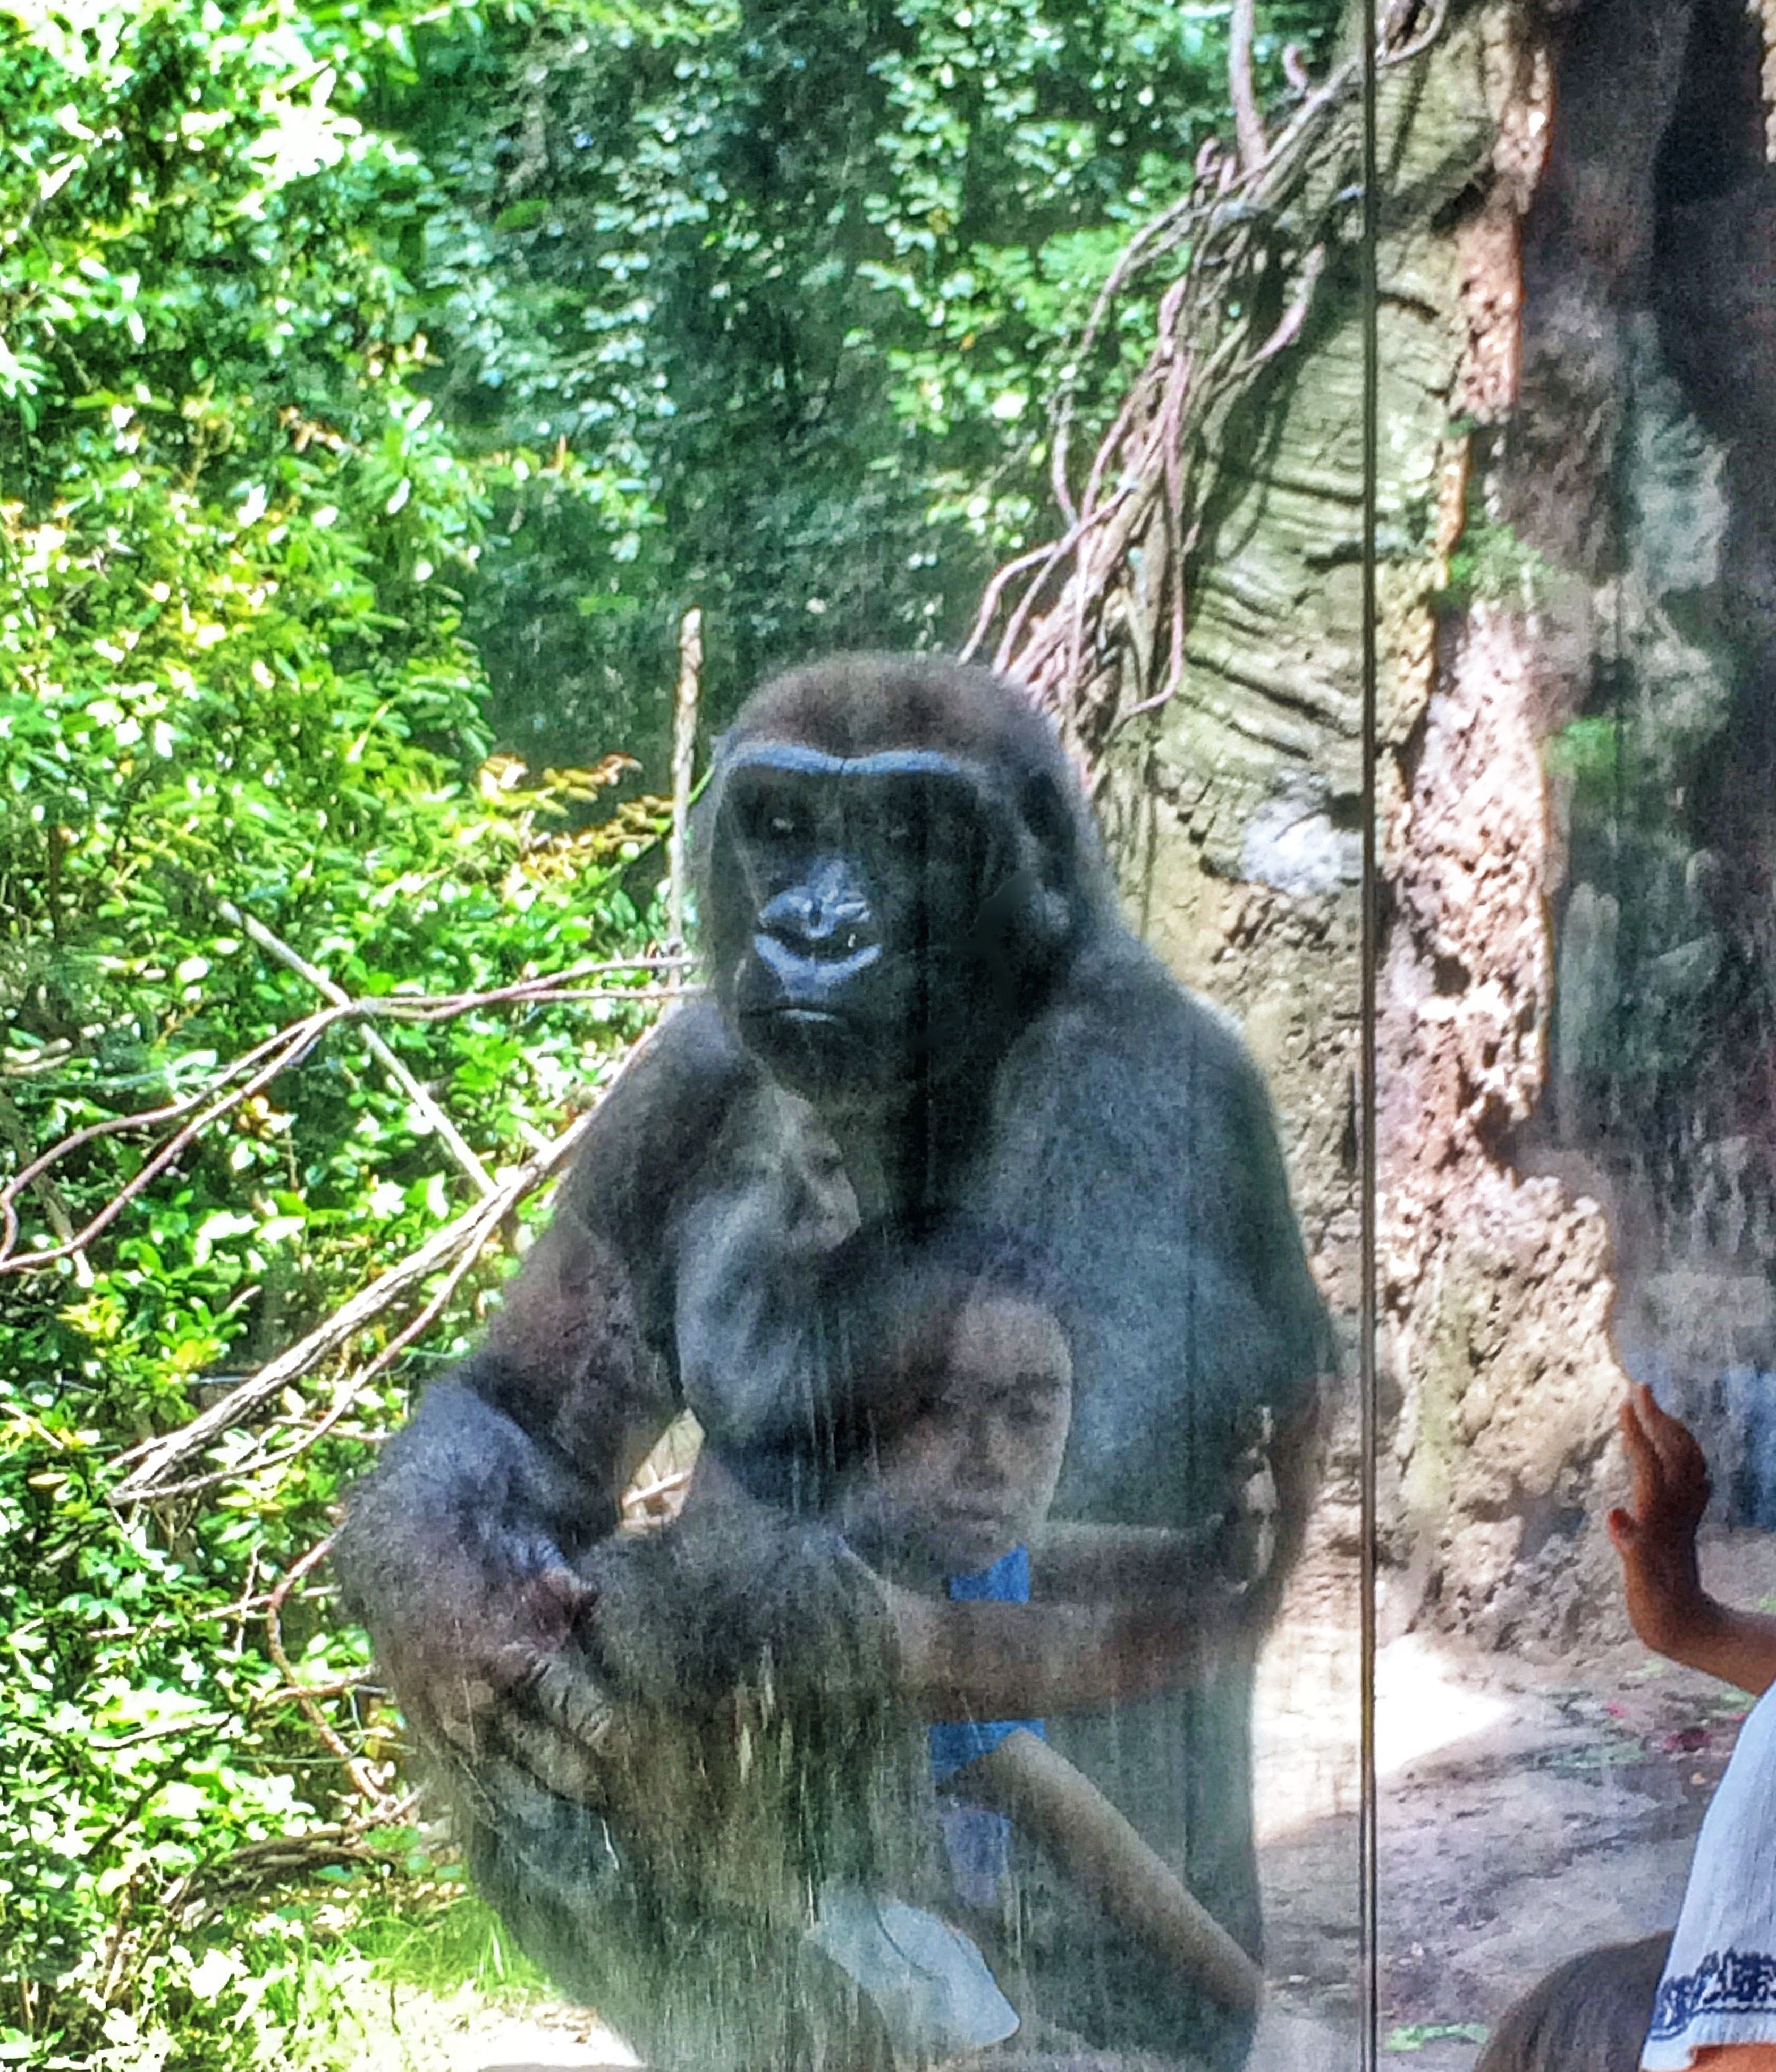 animal themes, tree, mammal, one animal, wildlife, forest, animals in the wild, sitting, monkey, zoo, tree trunk, relaxation, outdoors, primate, day, nature, portrait, looking at camera, branch